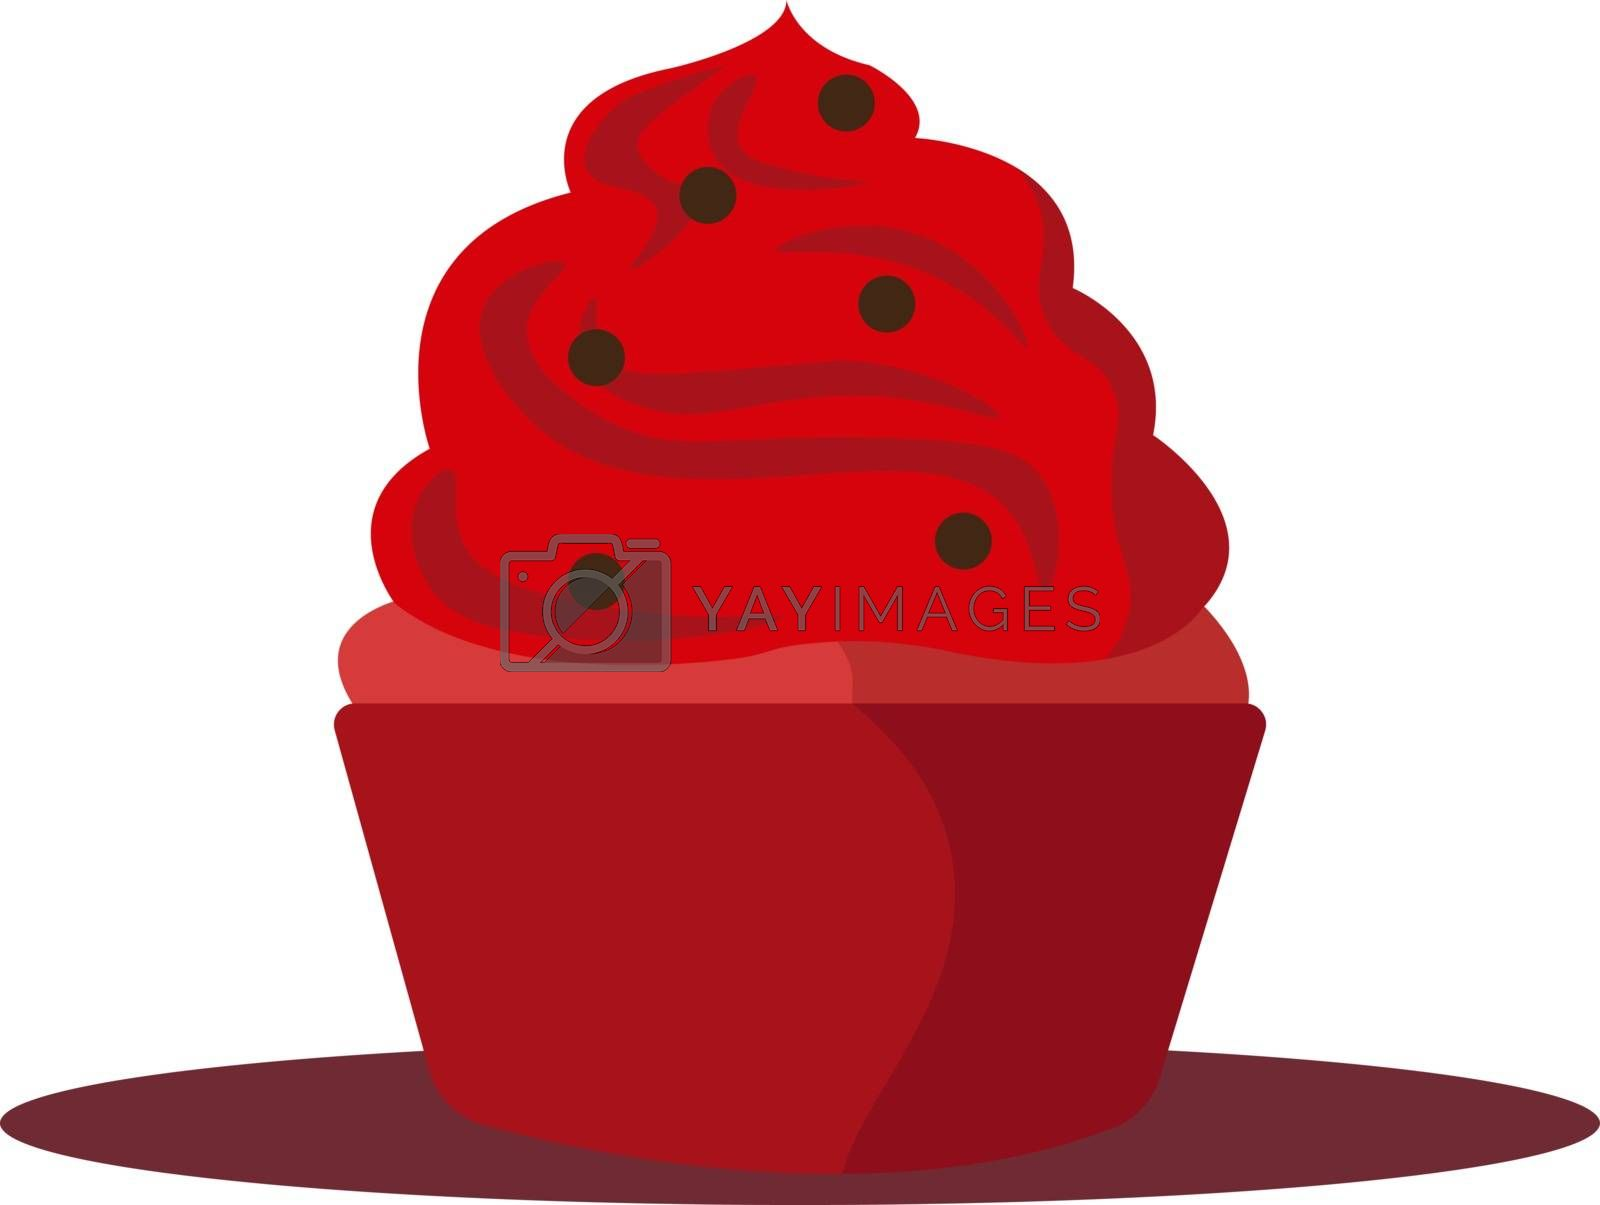 Red cupcake, illustration, vector on white background.